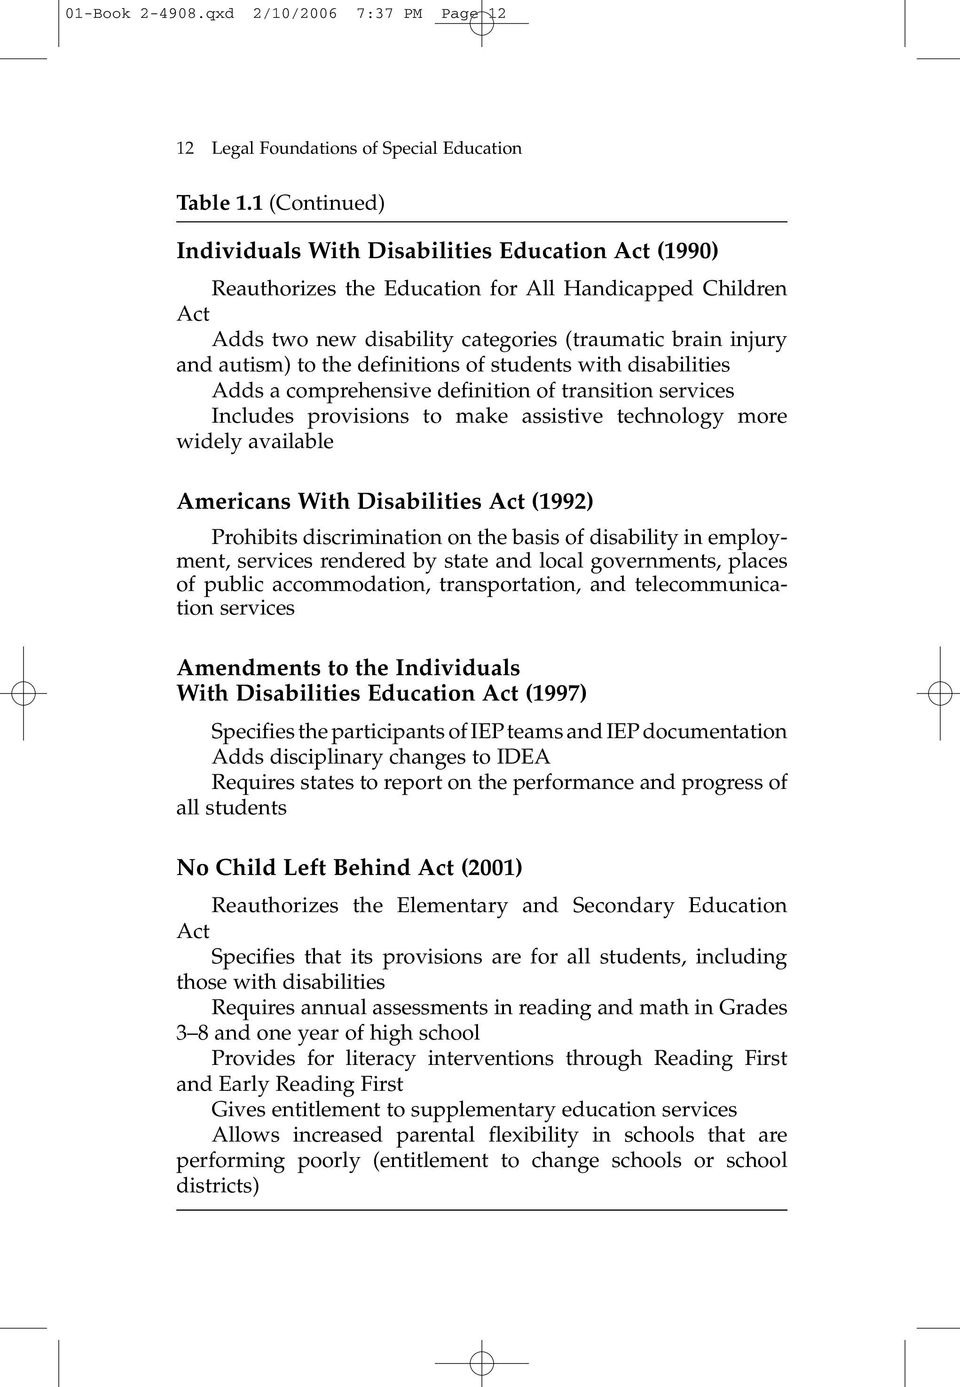 the definitions of students with disabilities Adds a comprehensive definition of transition services Includes provisions to make assistive technology more widely available Americans With Disabilities